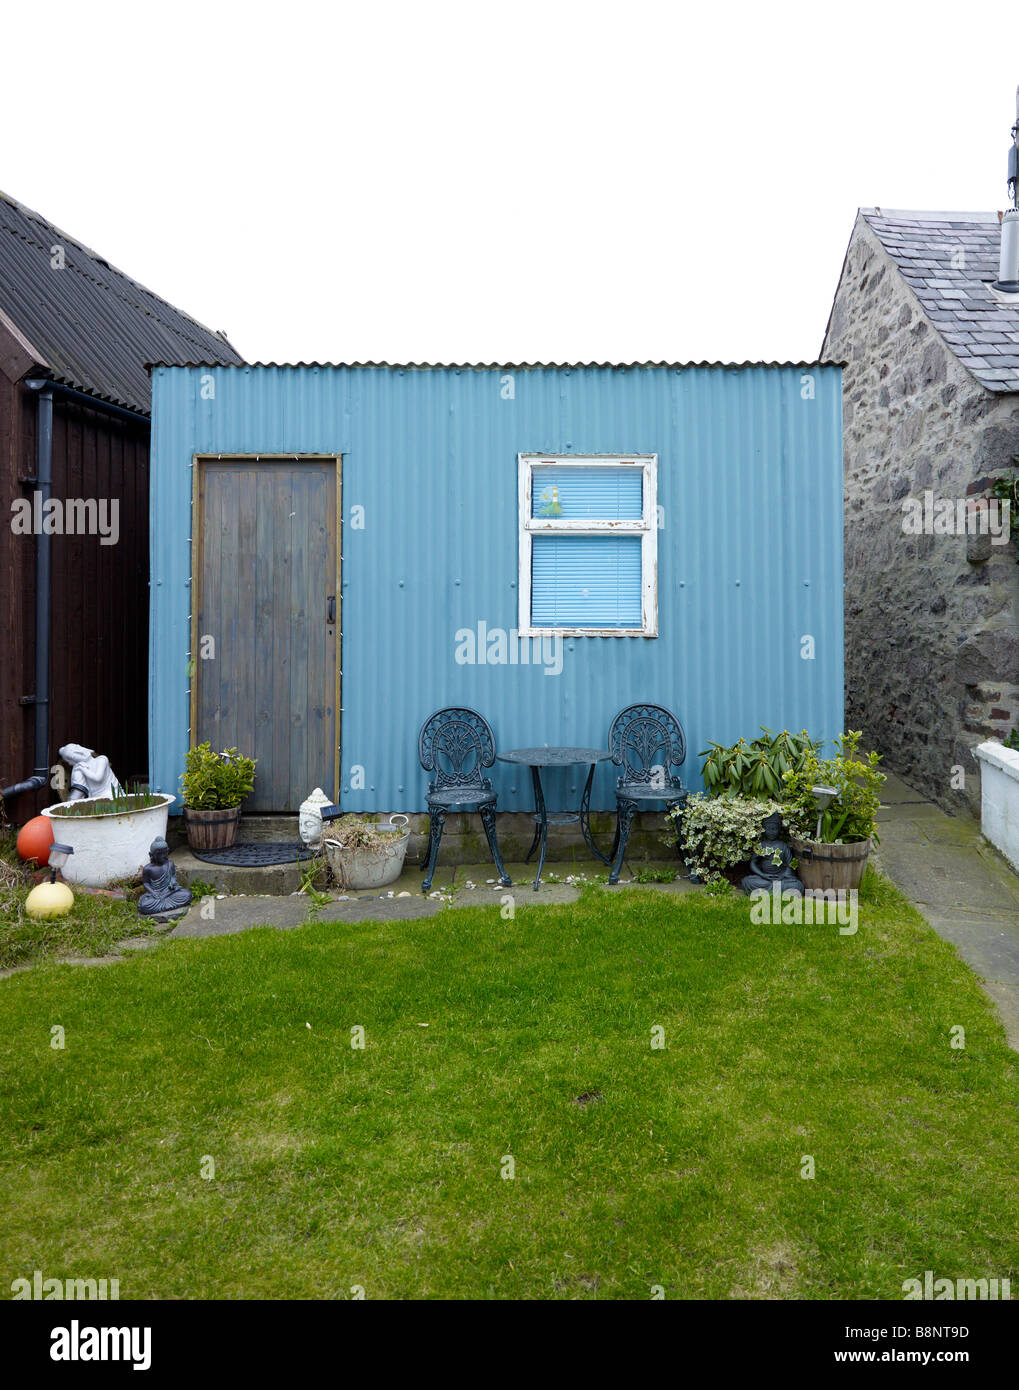 A small shed in the village of Foodee, Aberdeen, Scotland - Stock Image